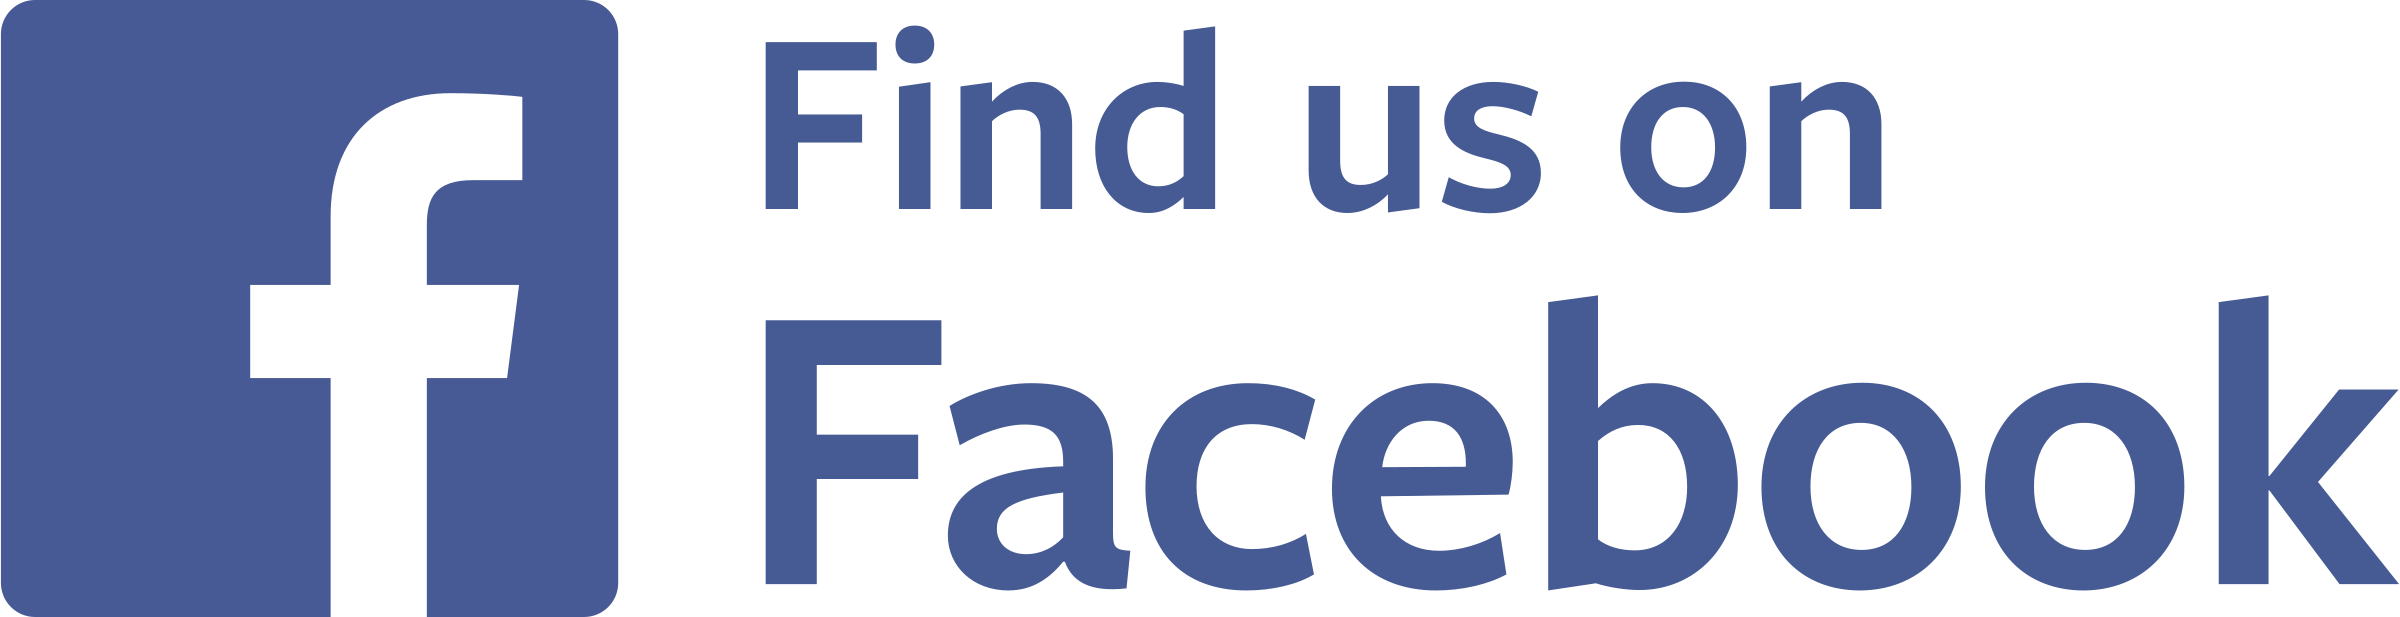 find-us-on-facebook-logo-png-transparent